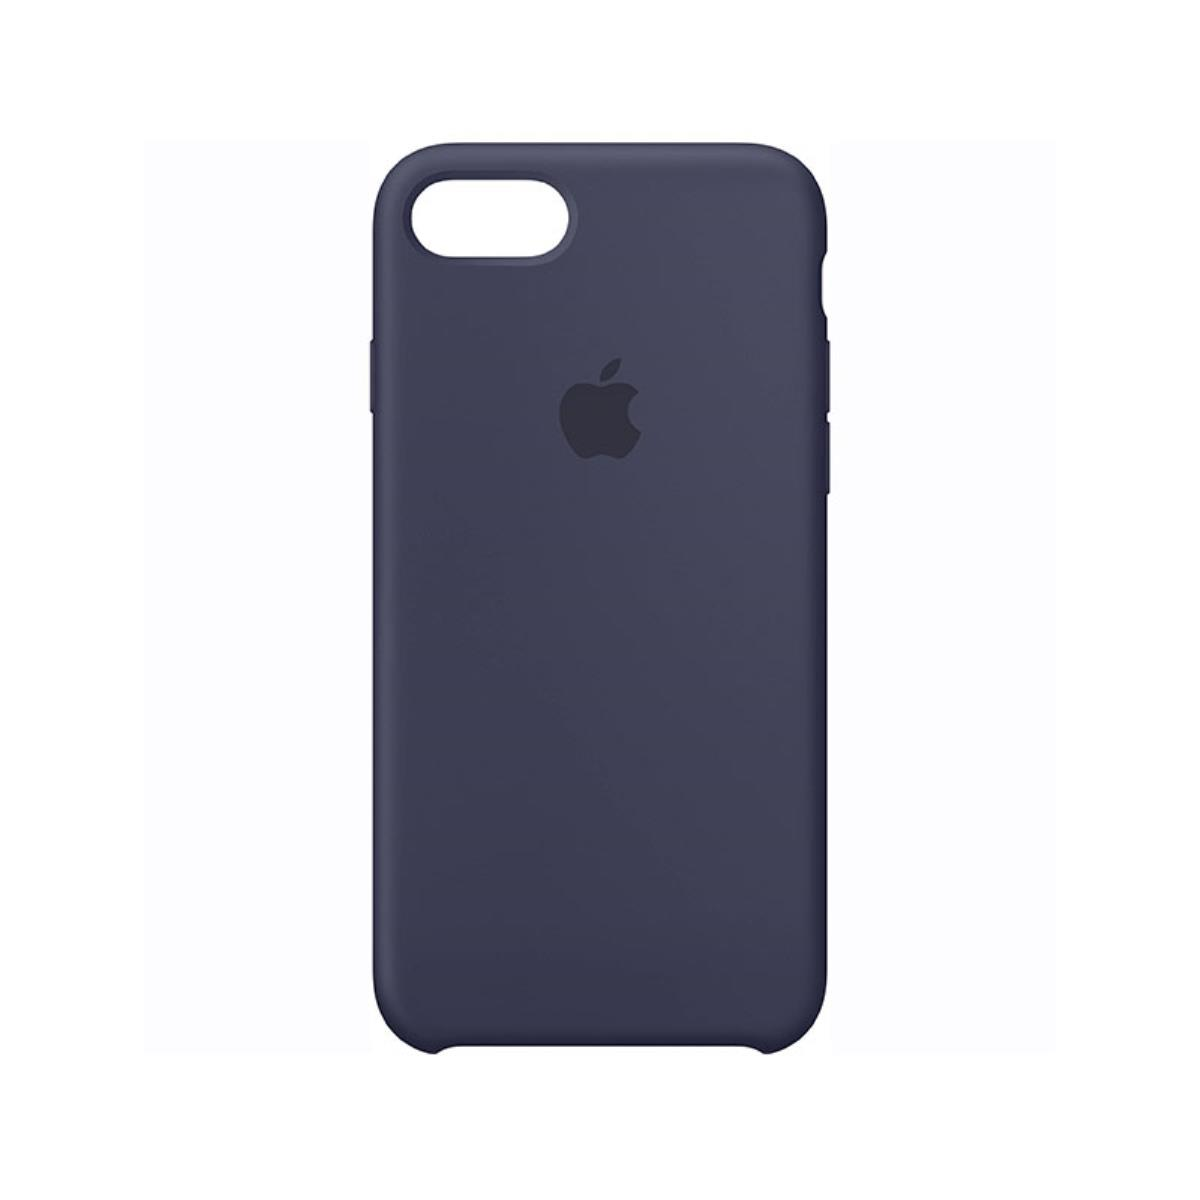 SILKONE OKKES JUMP IPHONE 7/8 COVER TRANSPARENT